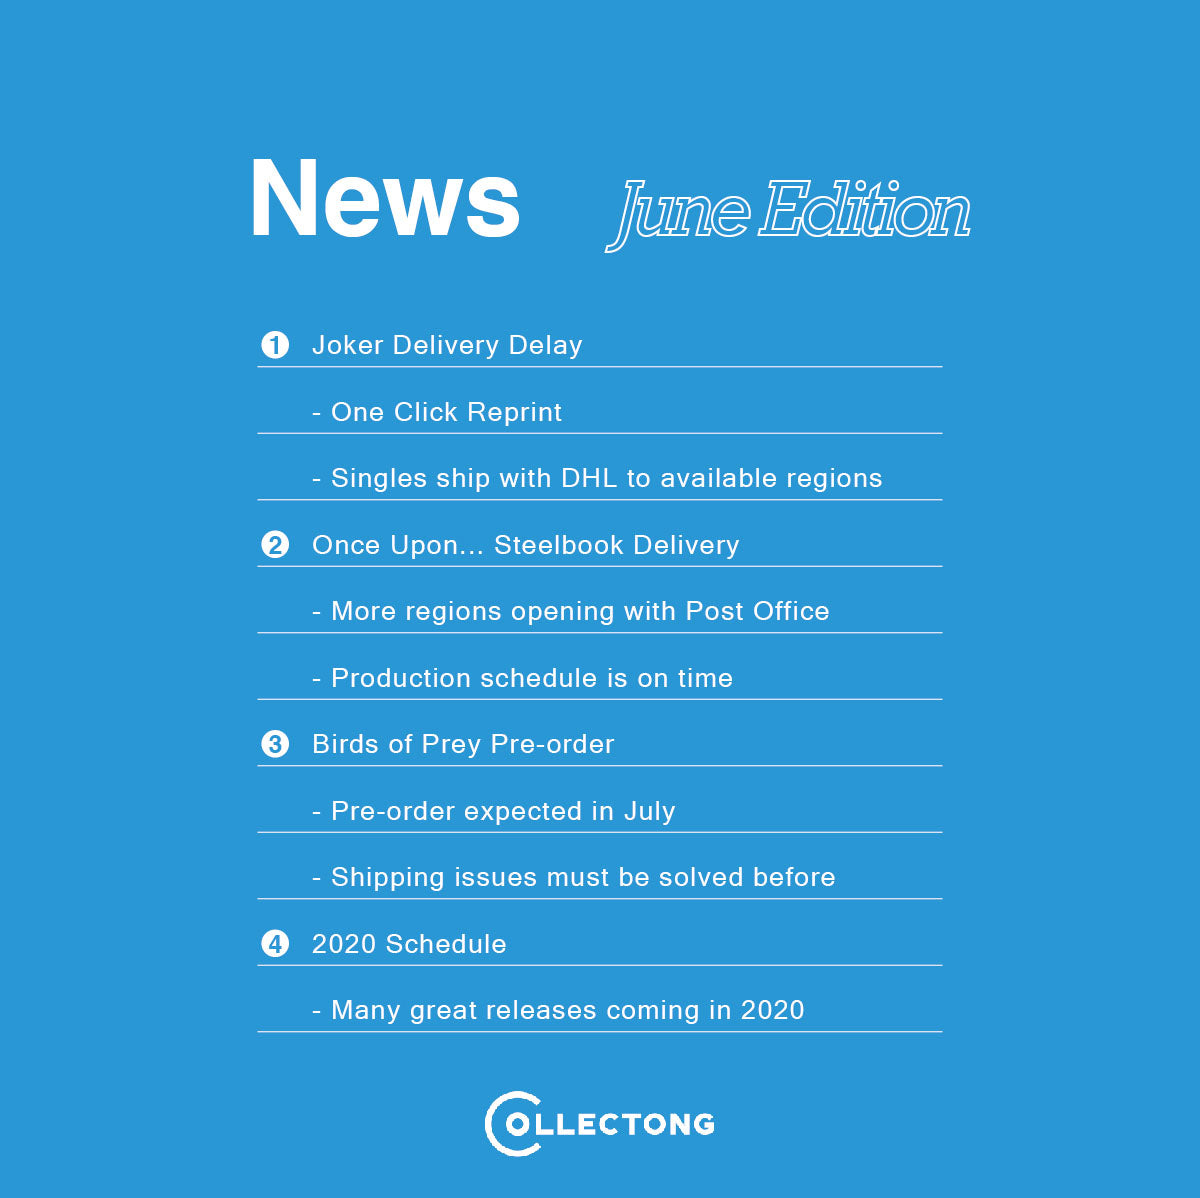 June News from Collectong